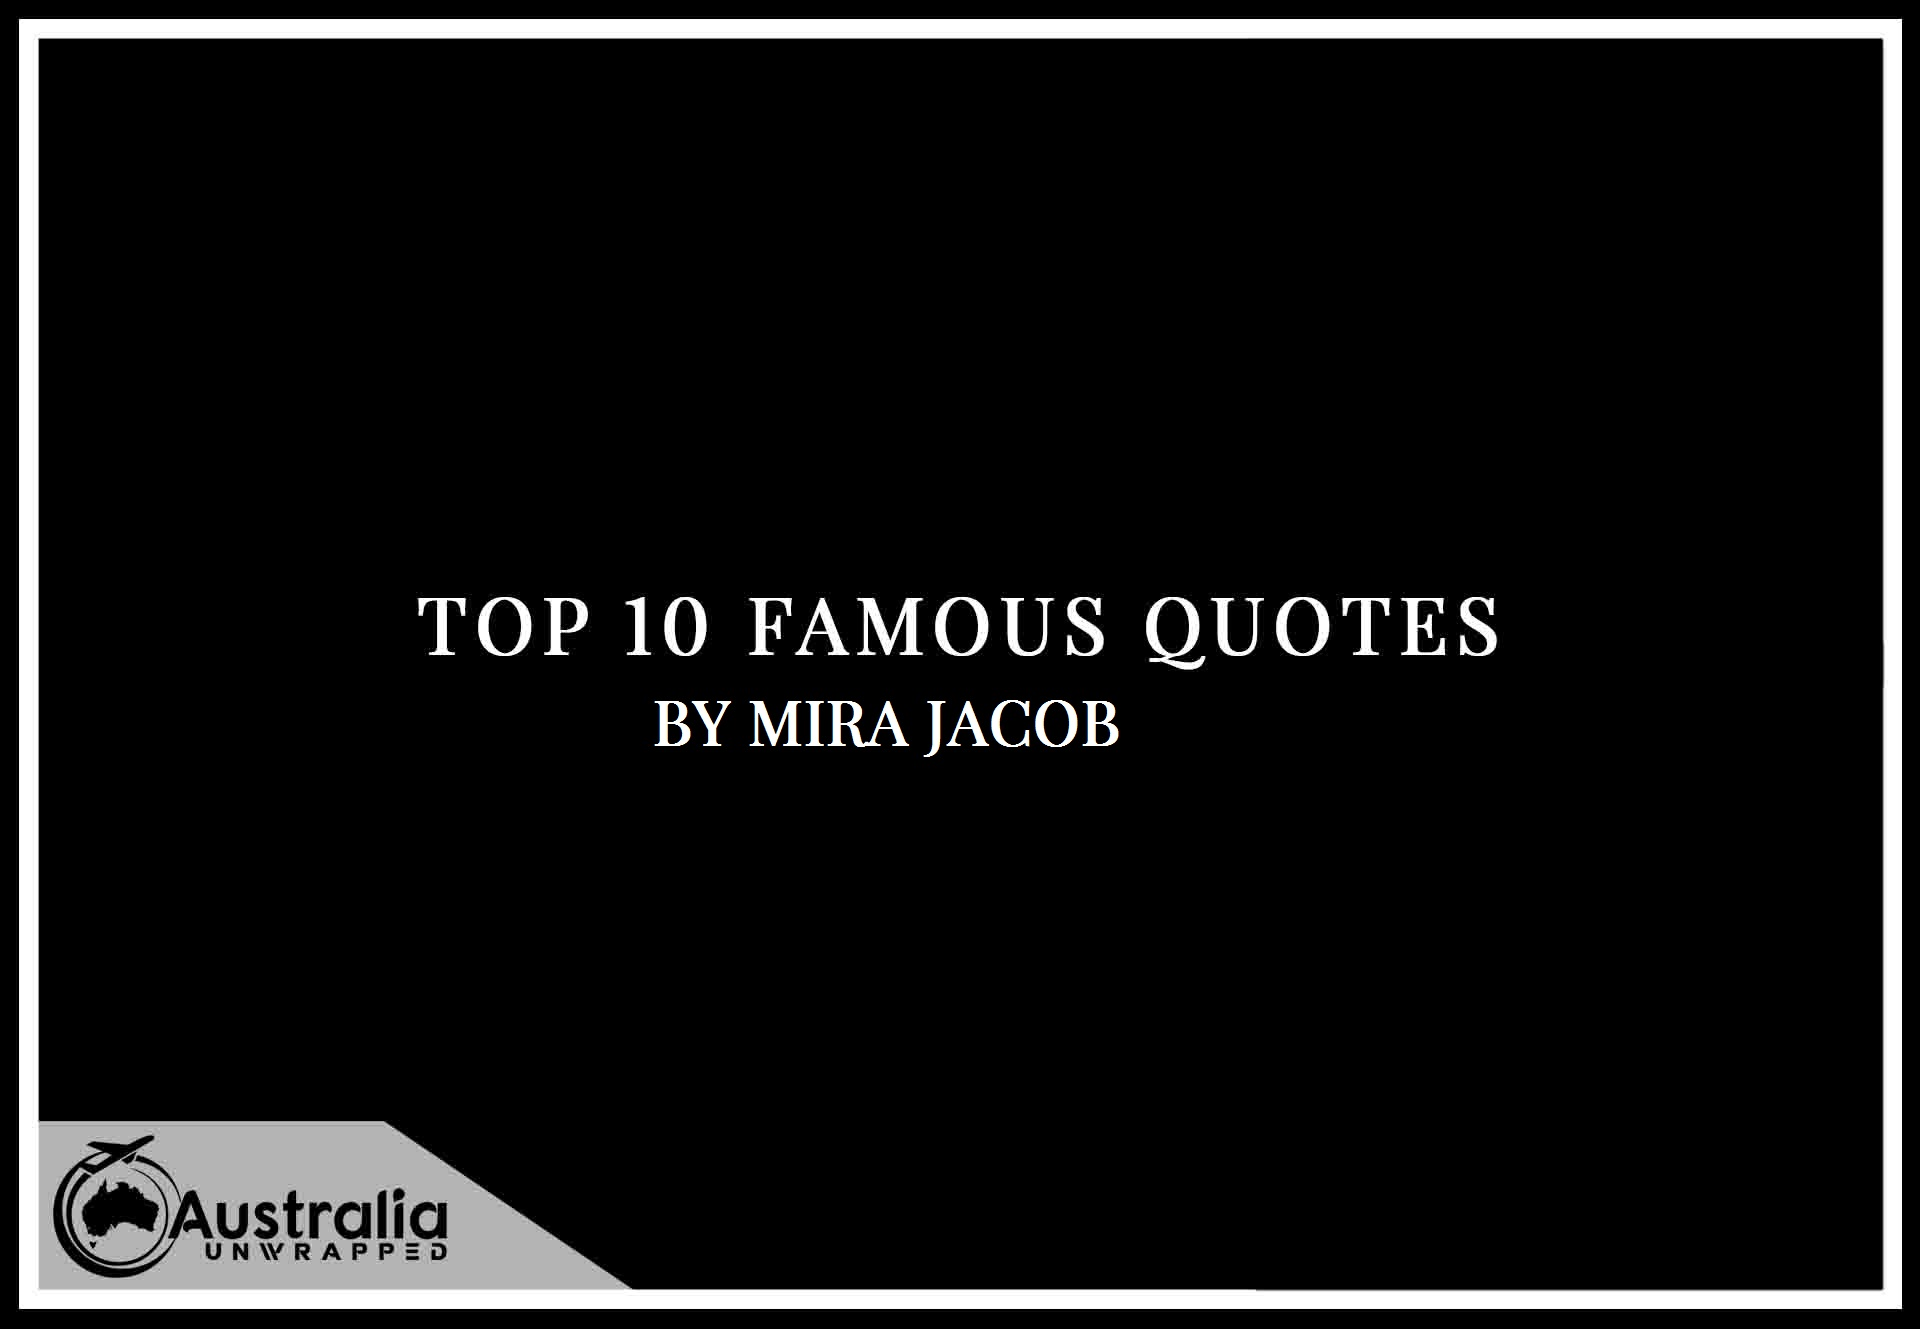 Mira Jacob's Top 10 Popular and Famous Quotes